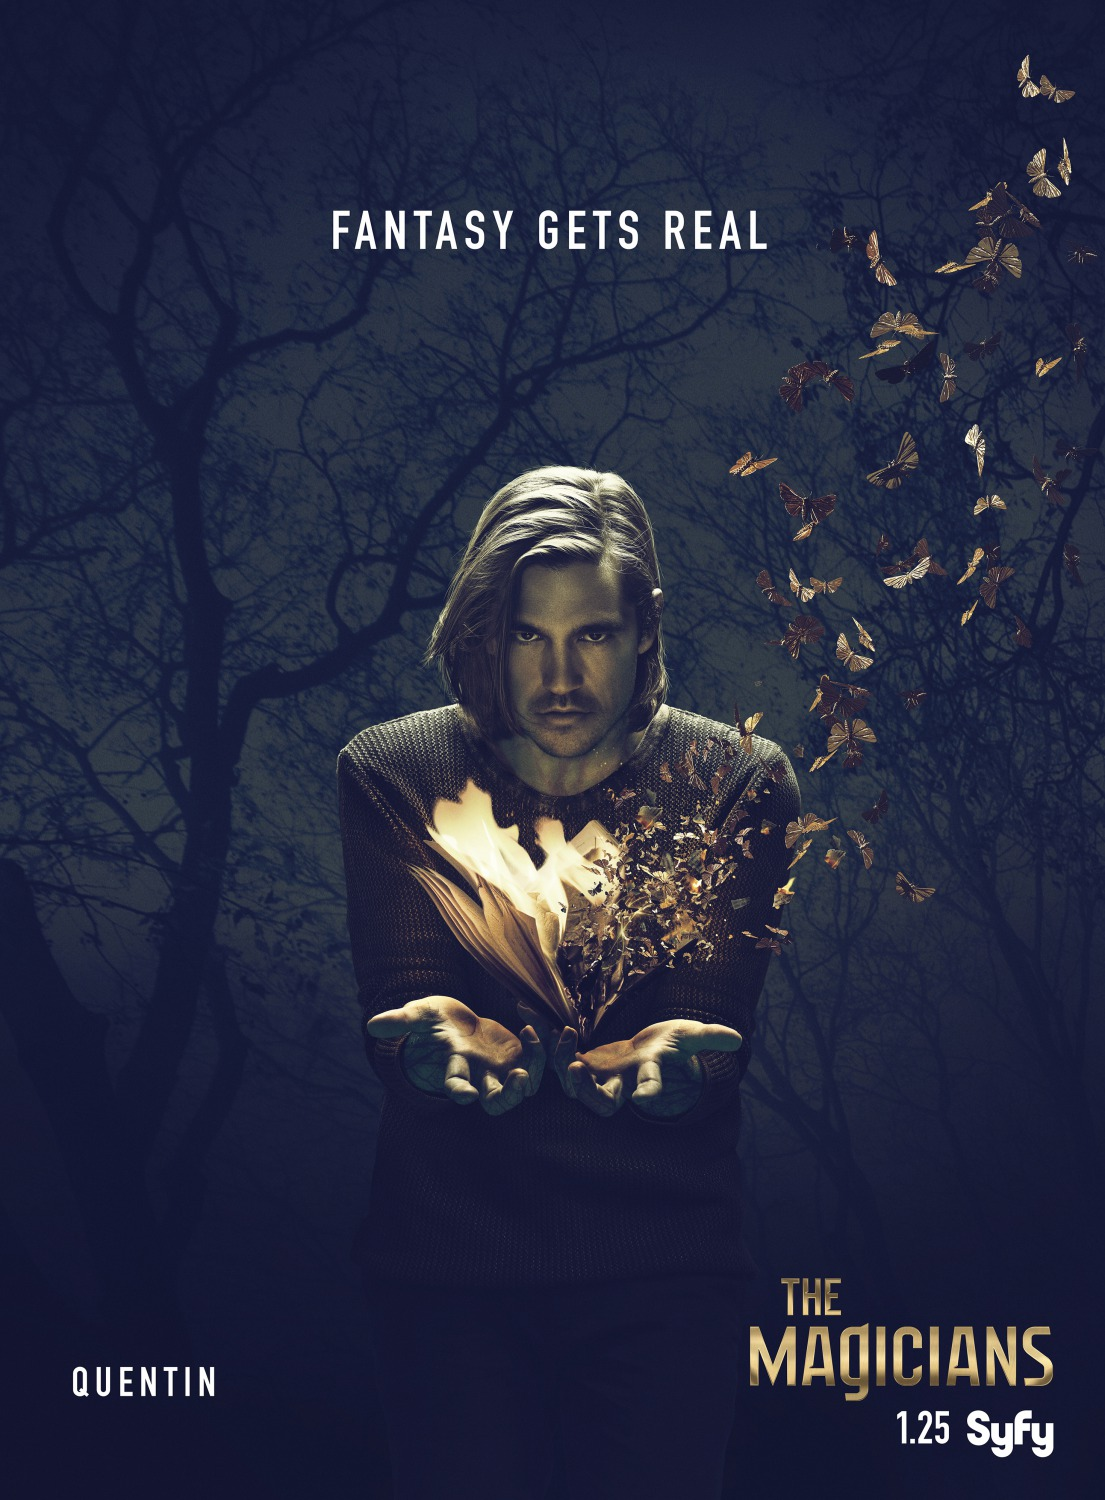 The Magician By Biddytarot On Pinterest: THE MAGICIANS Season 2 Trailers, Clips, Featurette, Images